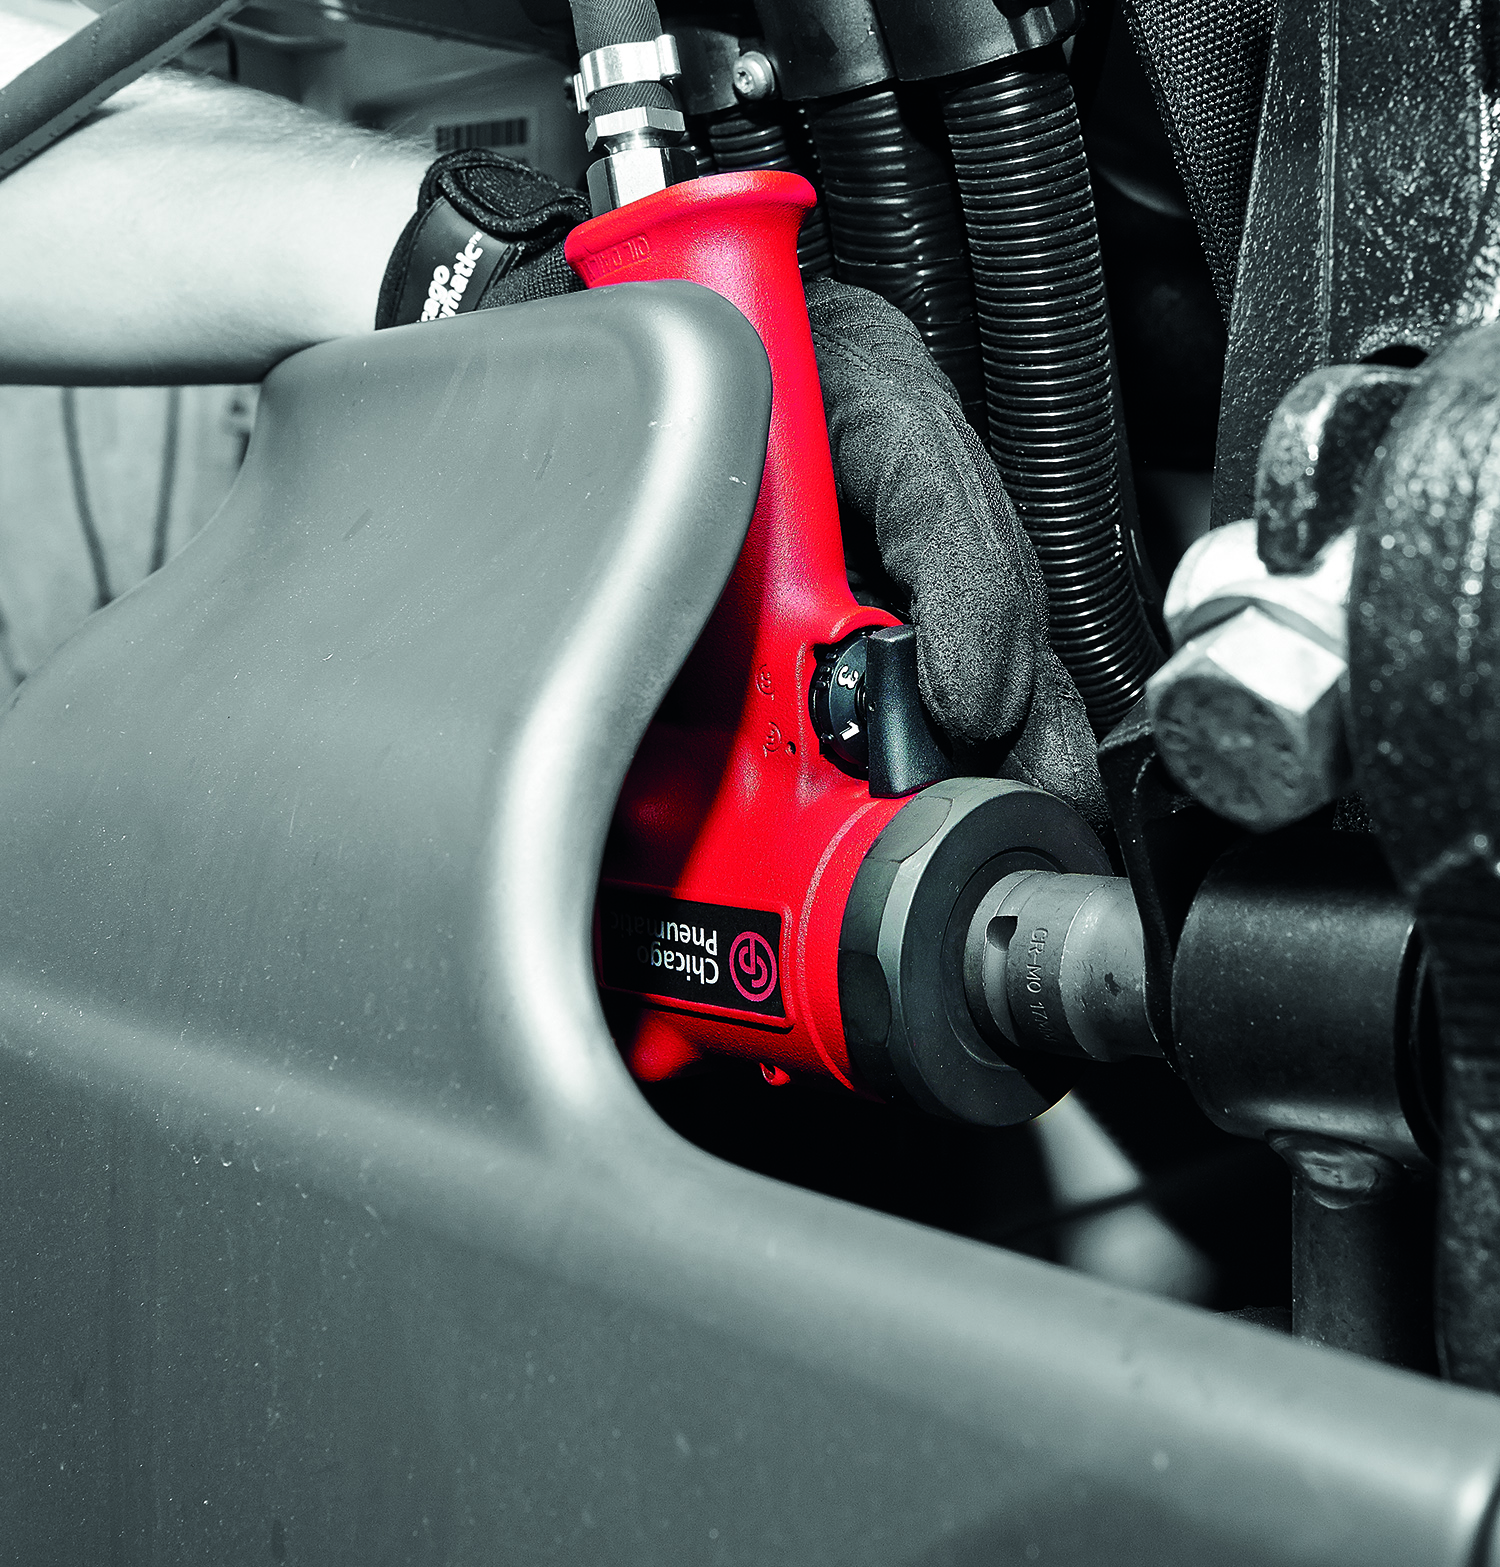 Powerful Chicago Pneumatic Impact Wrench